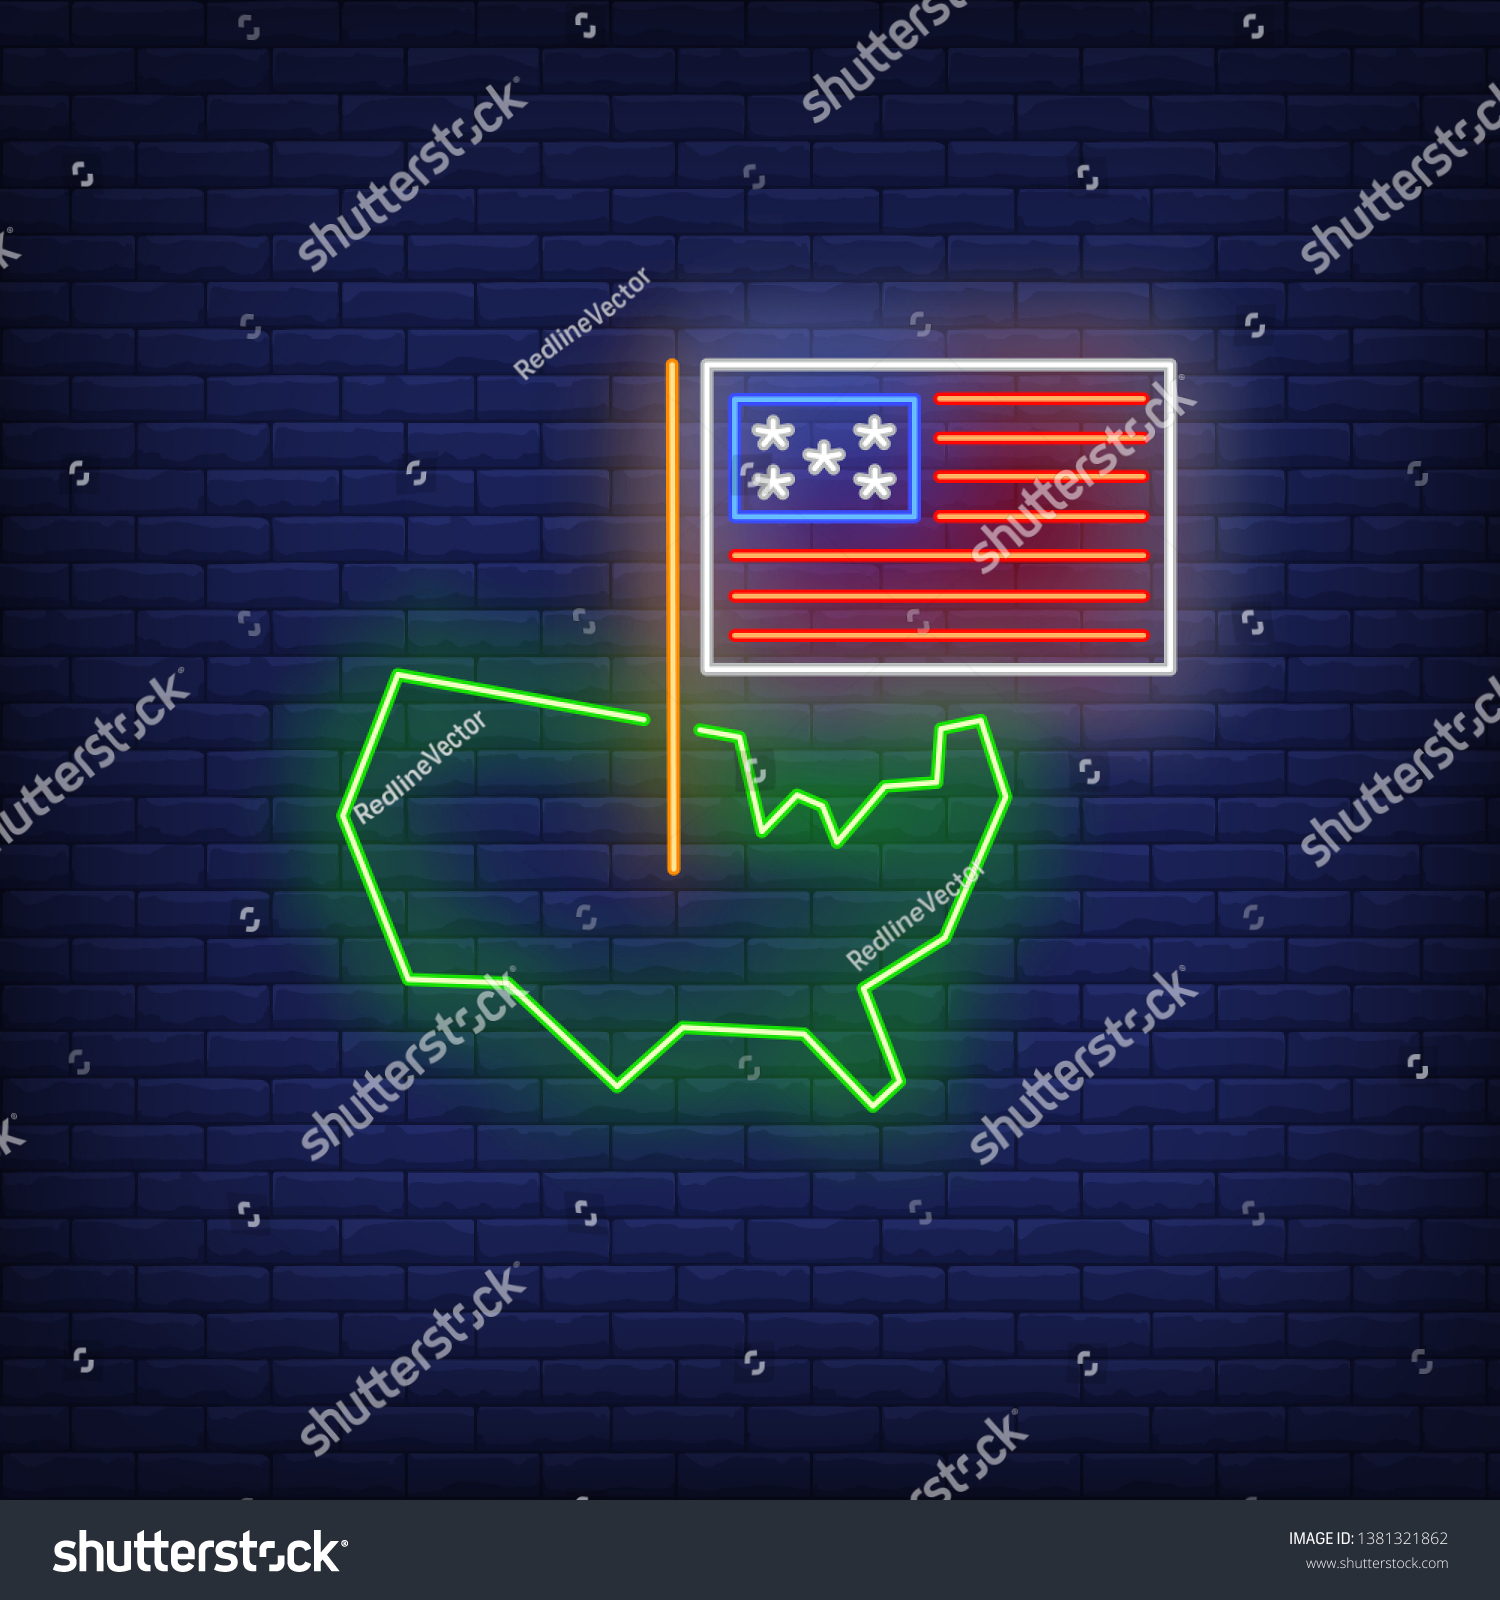 hight resolution of usa on map neon sign american borders national flag country 4th of july holiday vector illustration in neon style for festive independence day banners